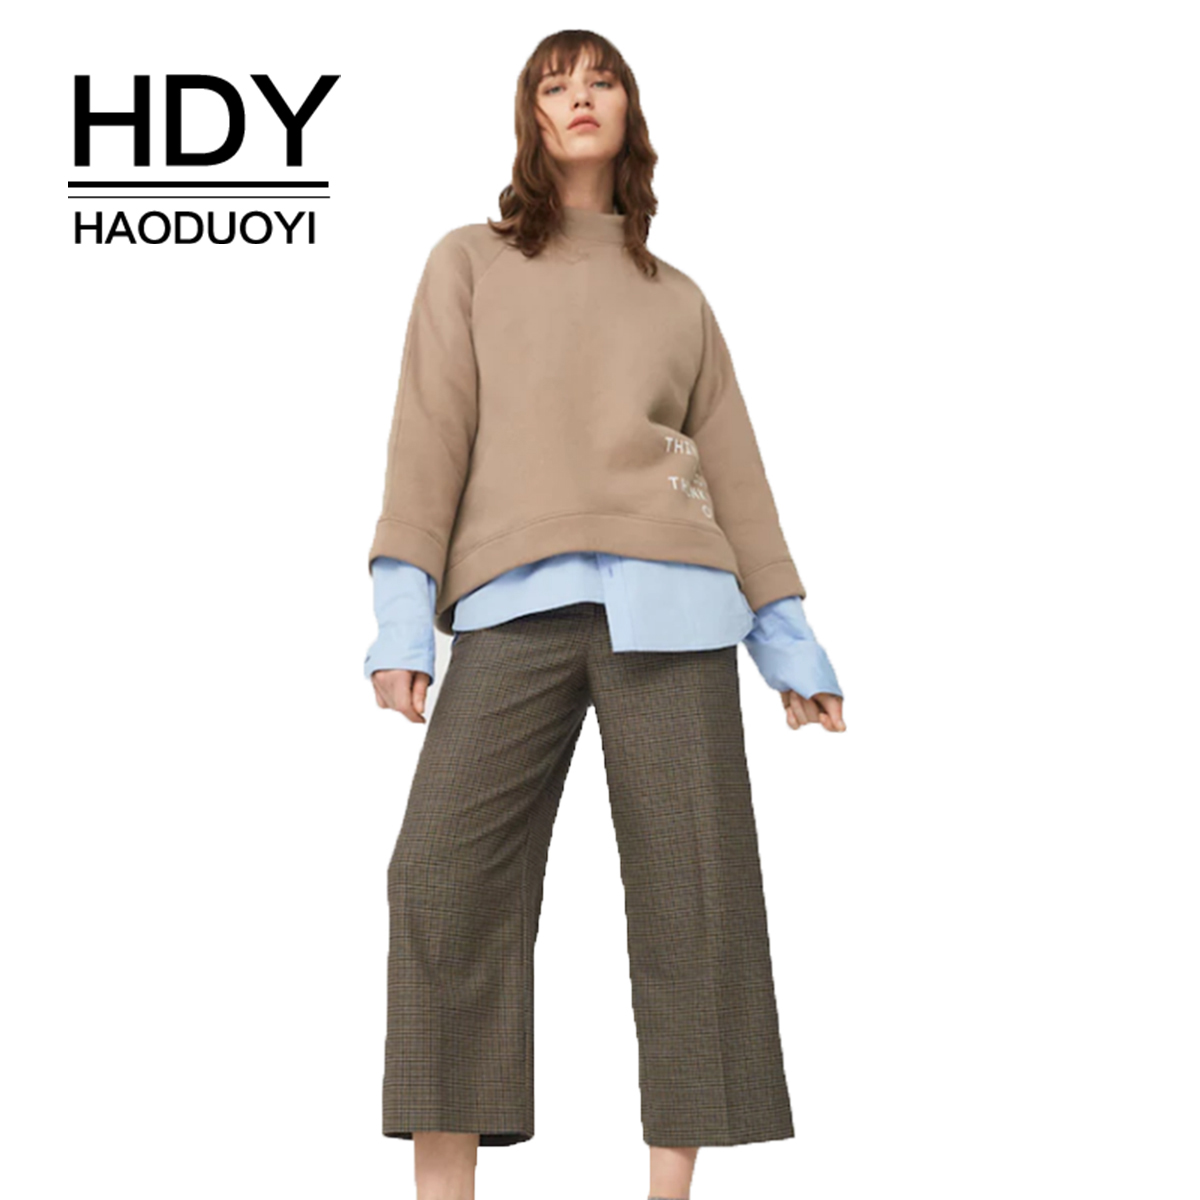 HDY Haoduoyi Simple and Easy College Commuting Neutral Wind Letter Printed Round collar Sports Leisure Sanitary Clothing in Hoodies amp Sweatshirts from Women 39 s Clothing